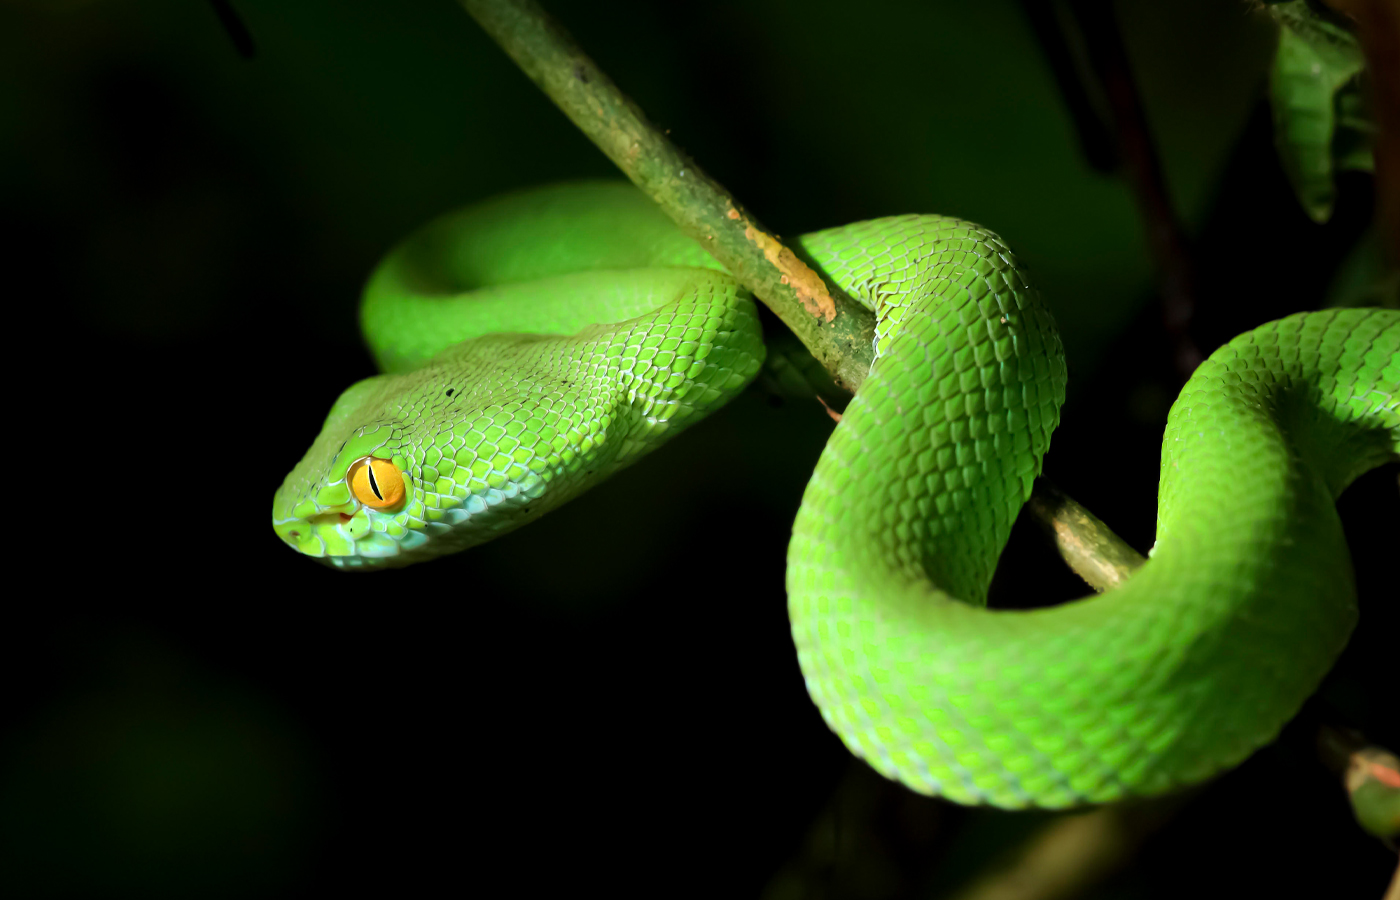 Snakes: Mysteries in Nature